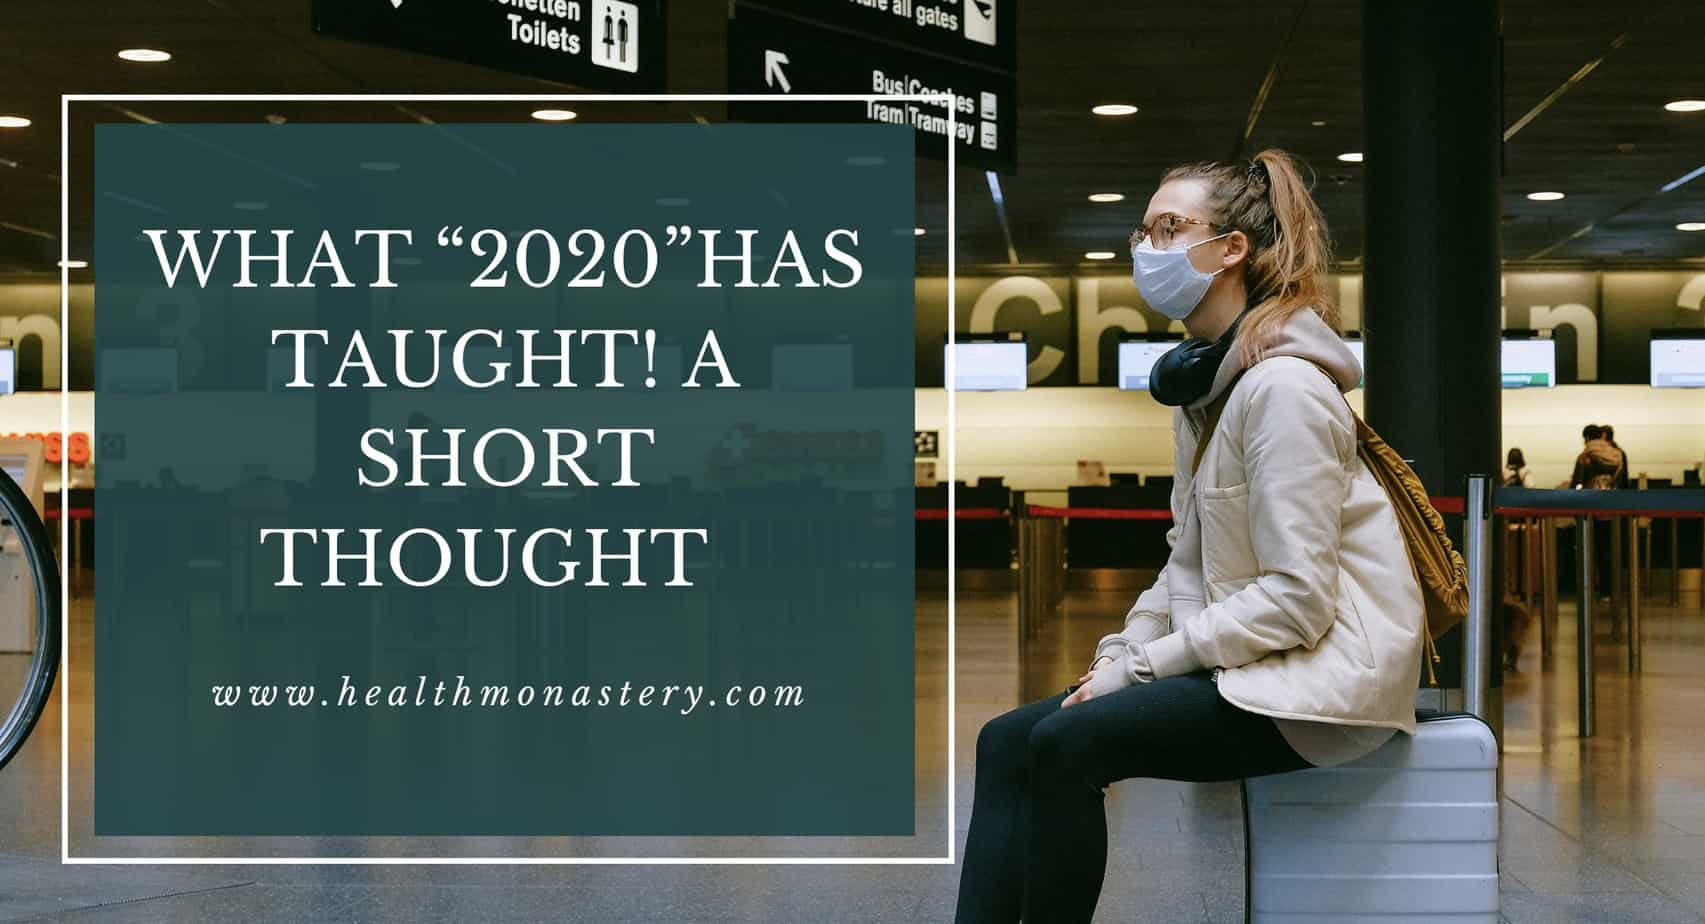 What 2020 has taught us @healthmonastery